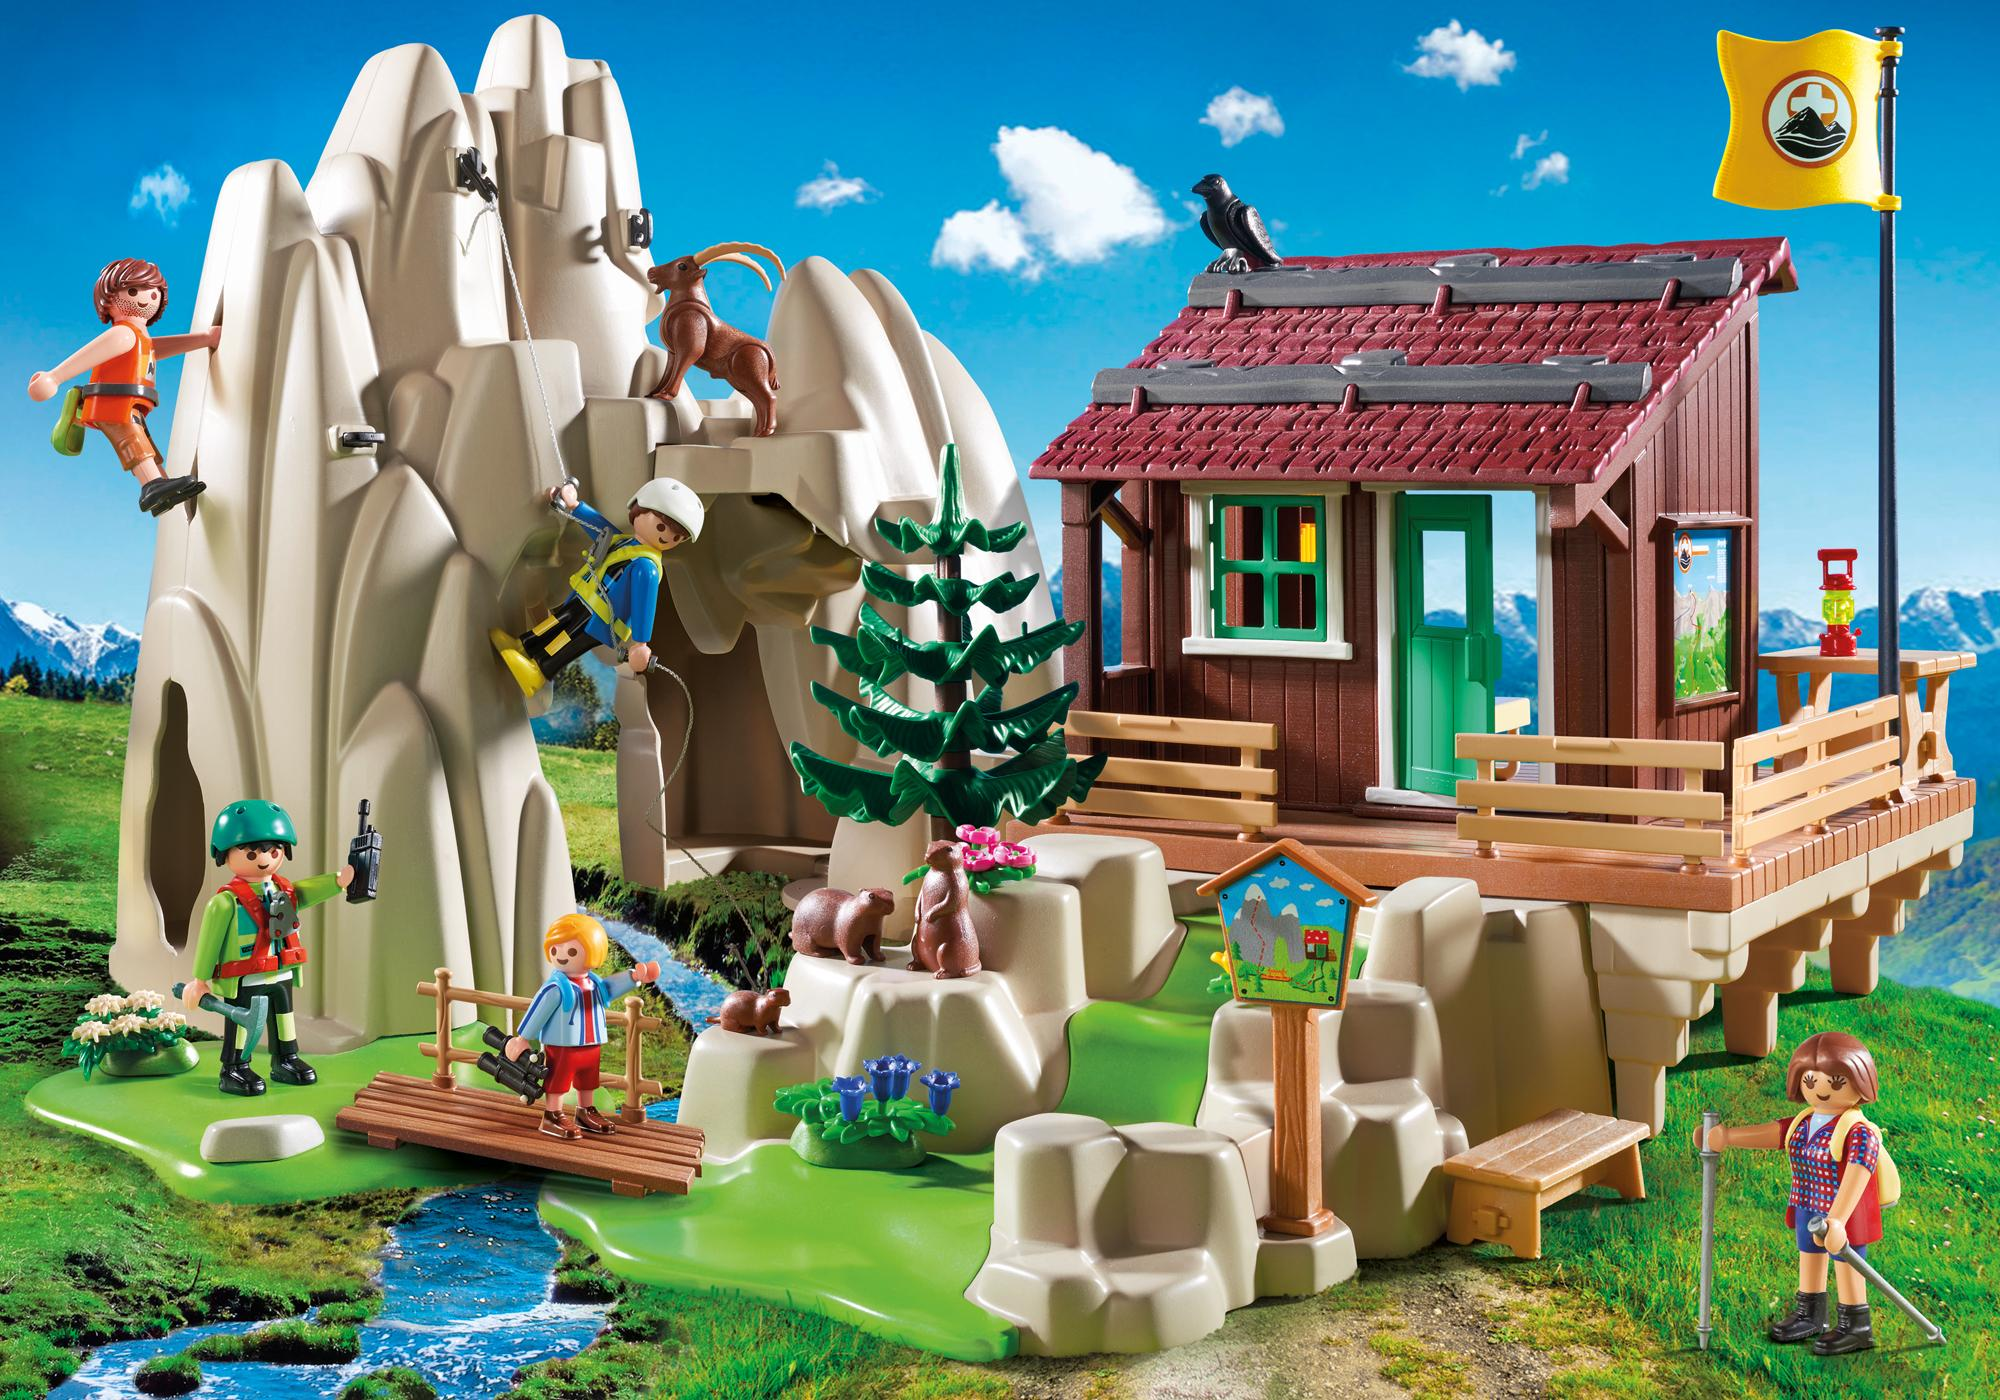 http://media.playmobil.com/i/playmobil/9126_product_detail/Rock Climbers with Cabin